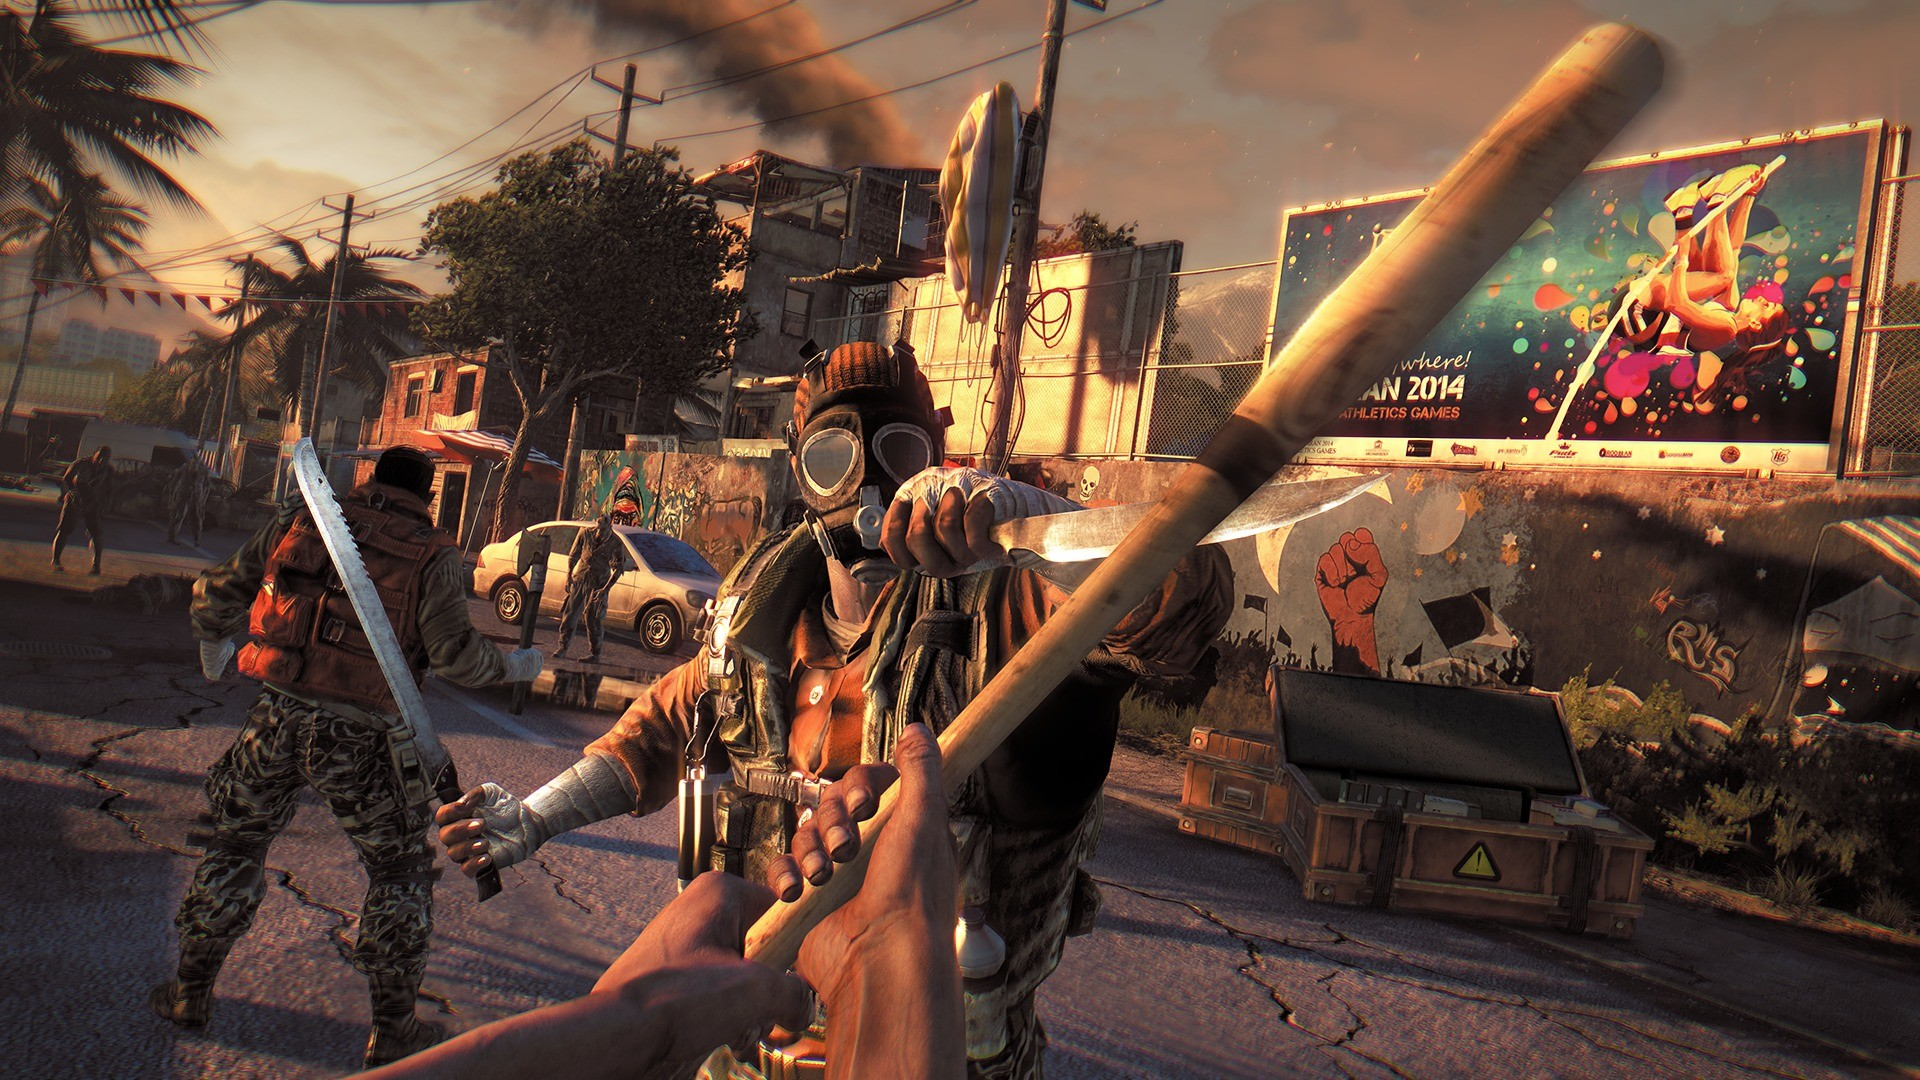 download dying light the following enhanced edition reinforcements cracked by reloaded include all dlc and latest update mirrorace multiup